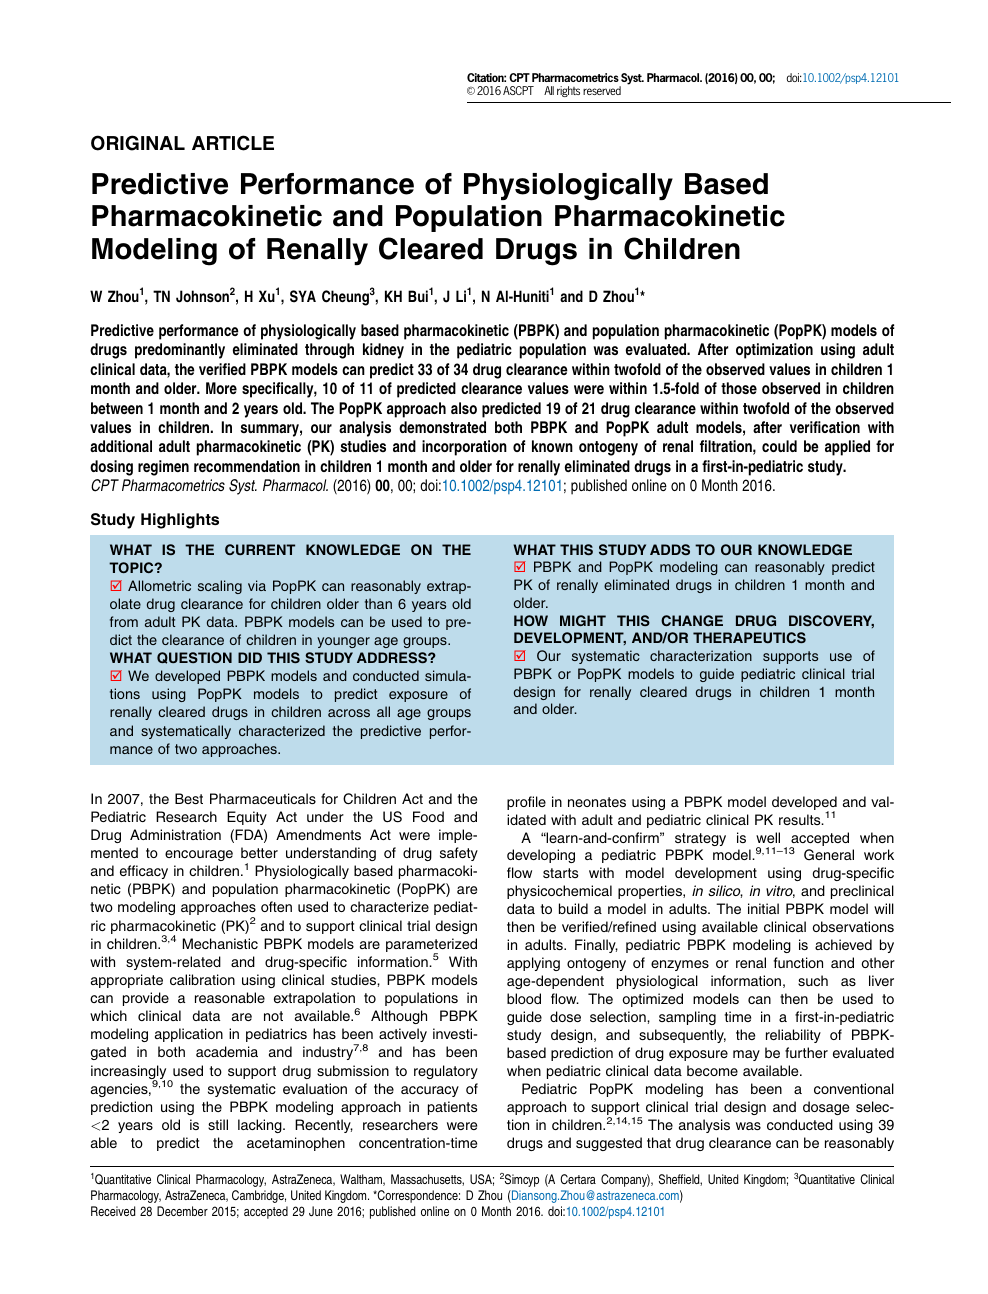 Predictive Performance of Physiologically Based